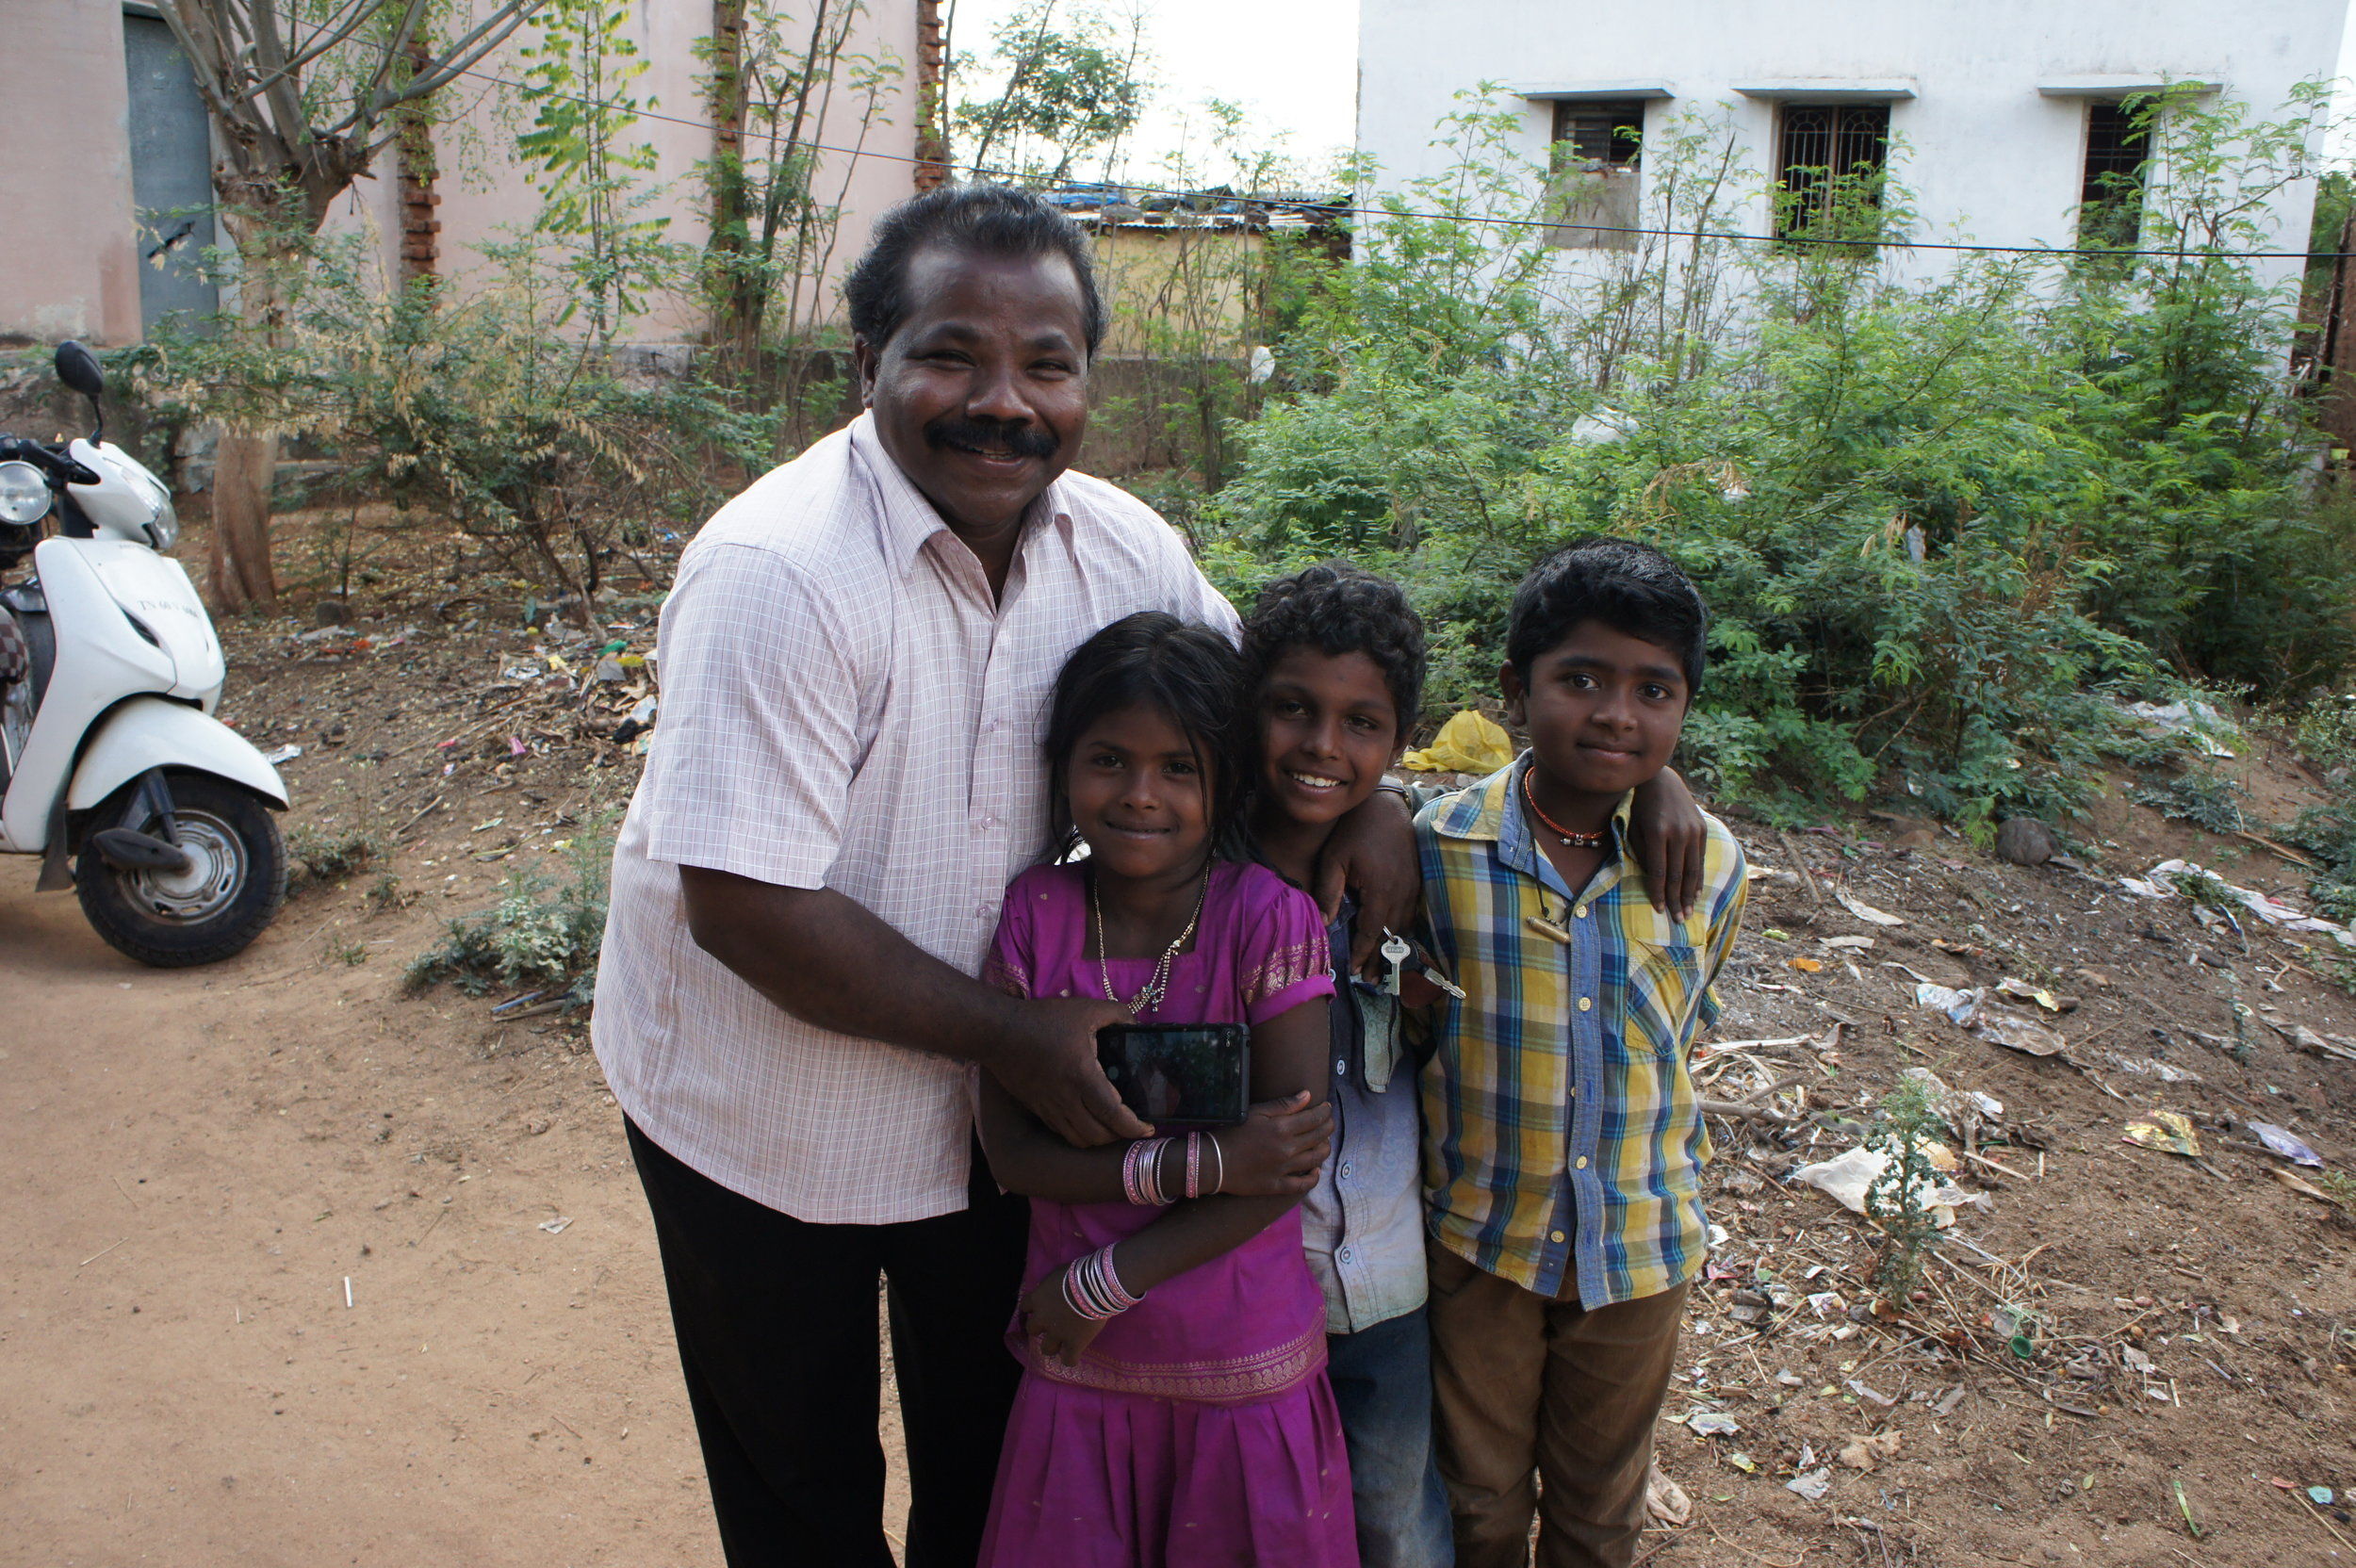 Rev. David and some of the children he knows